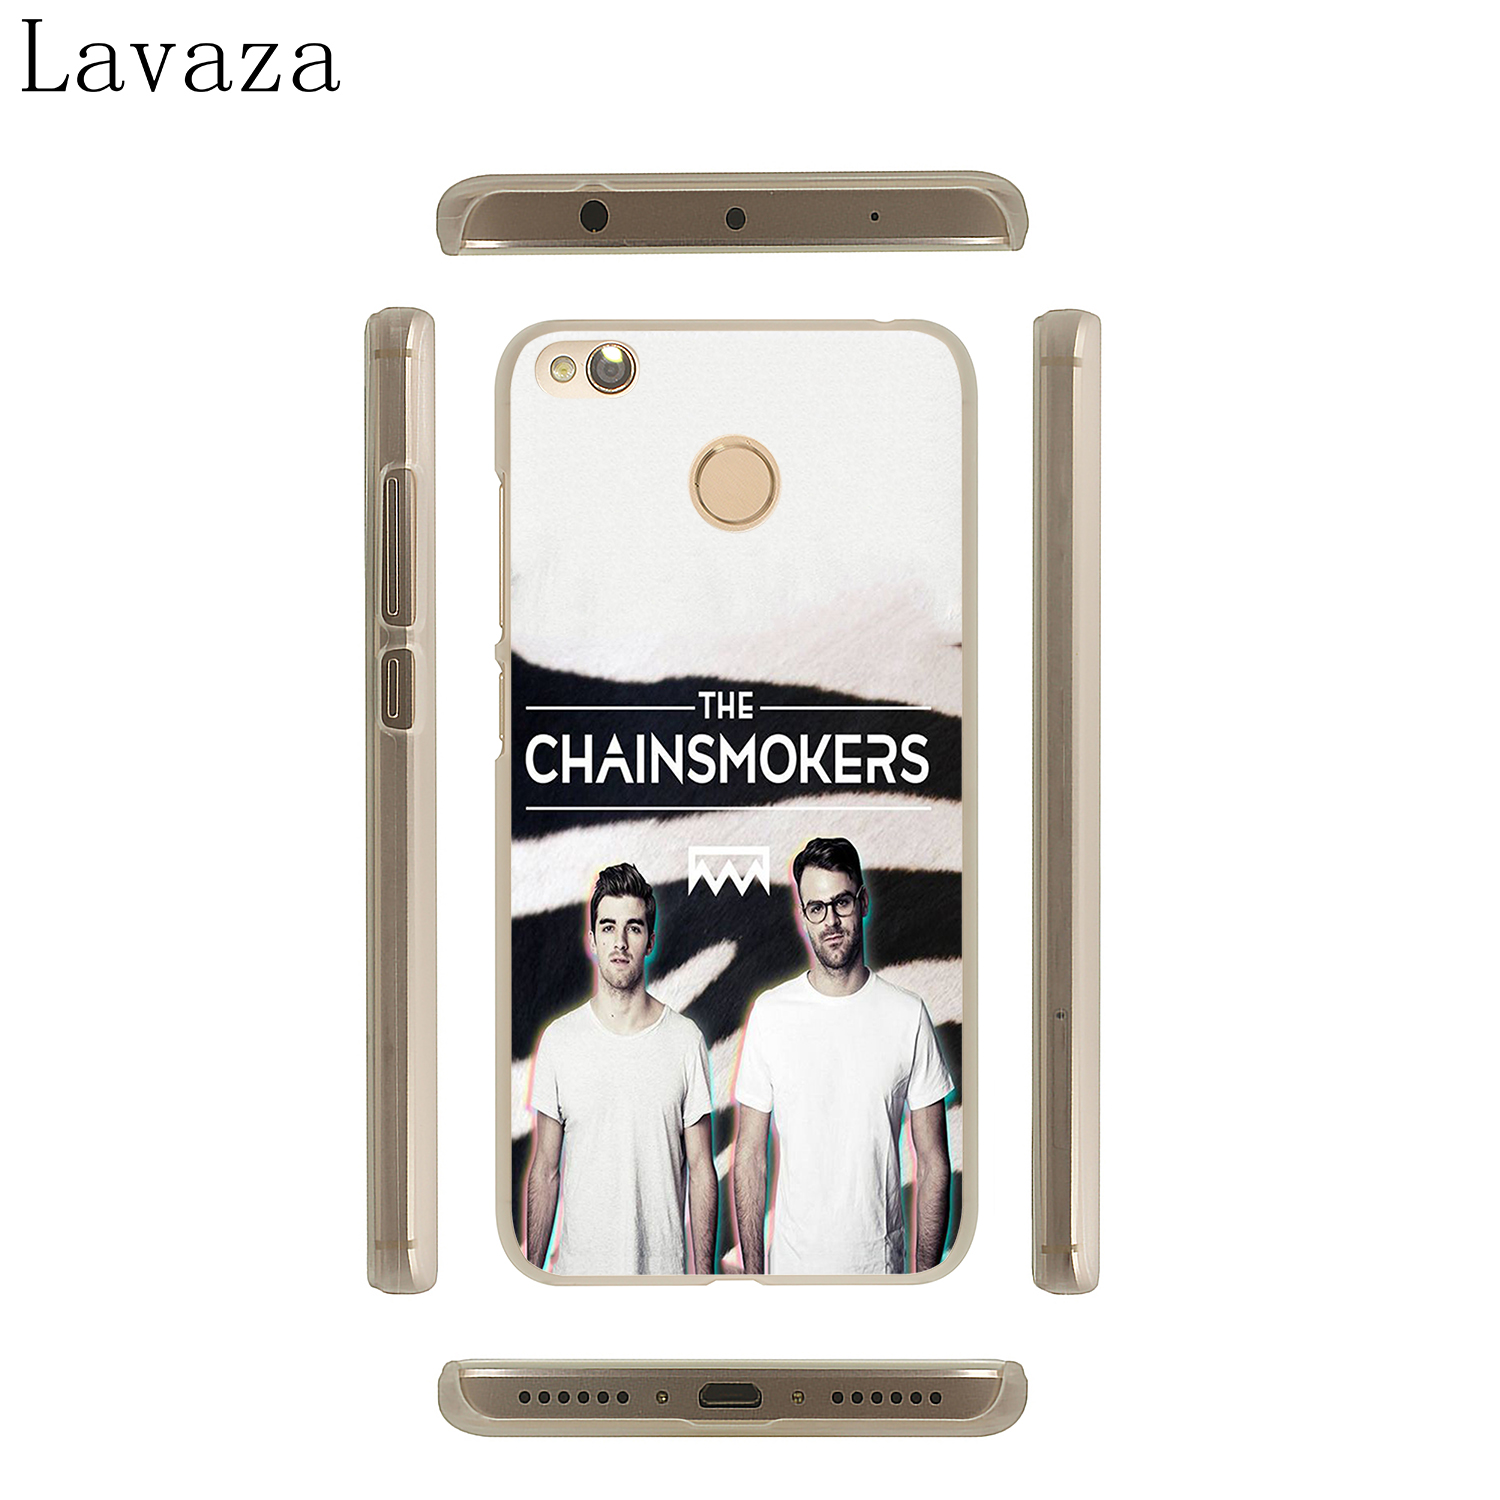 Lavaza The Chainsmokers Phone Cover Case for Xiaomi MI A2 lite A1 8 SE 6X 5X MIX 2S MiA2 Redmi 4A S2 Note 4 4X 6 5 Pro 5A Prime in Half wrapped Case